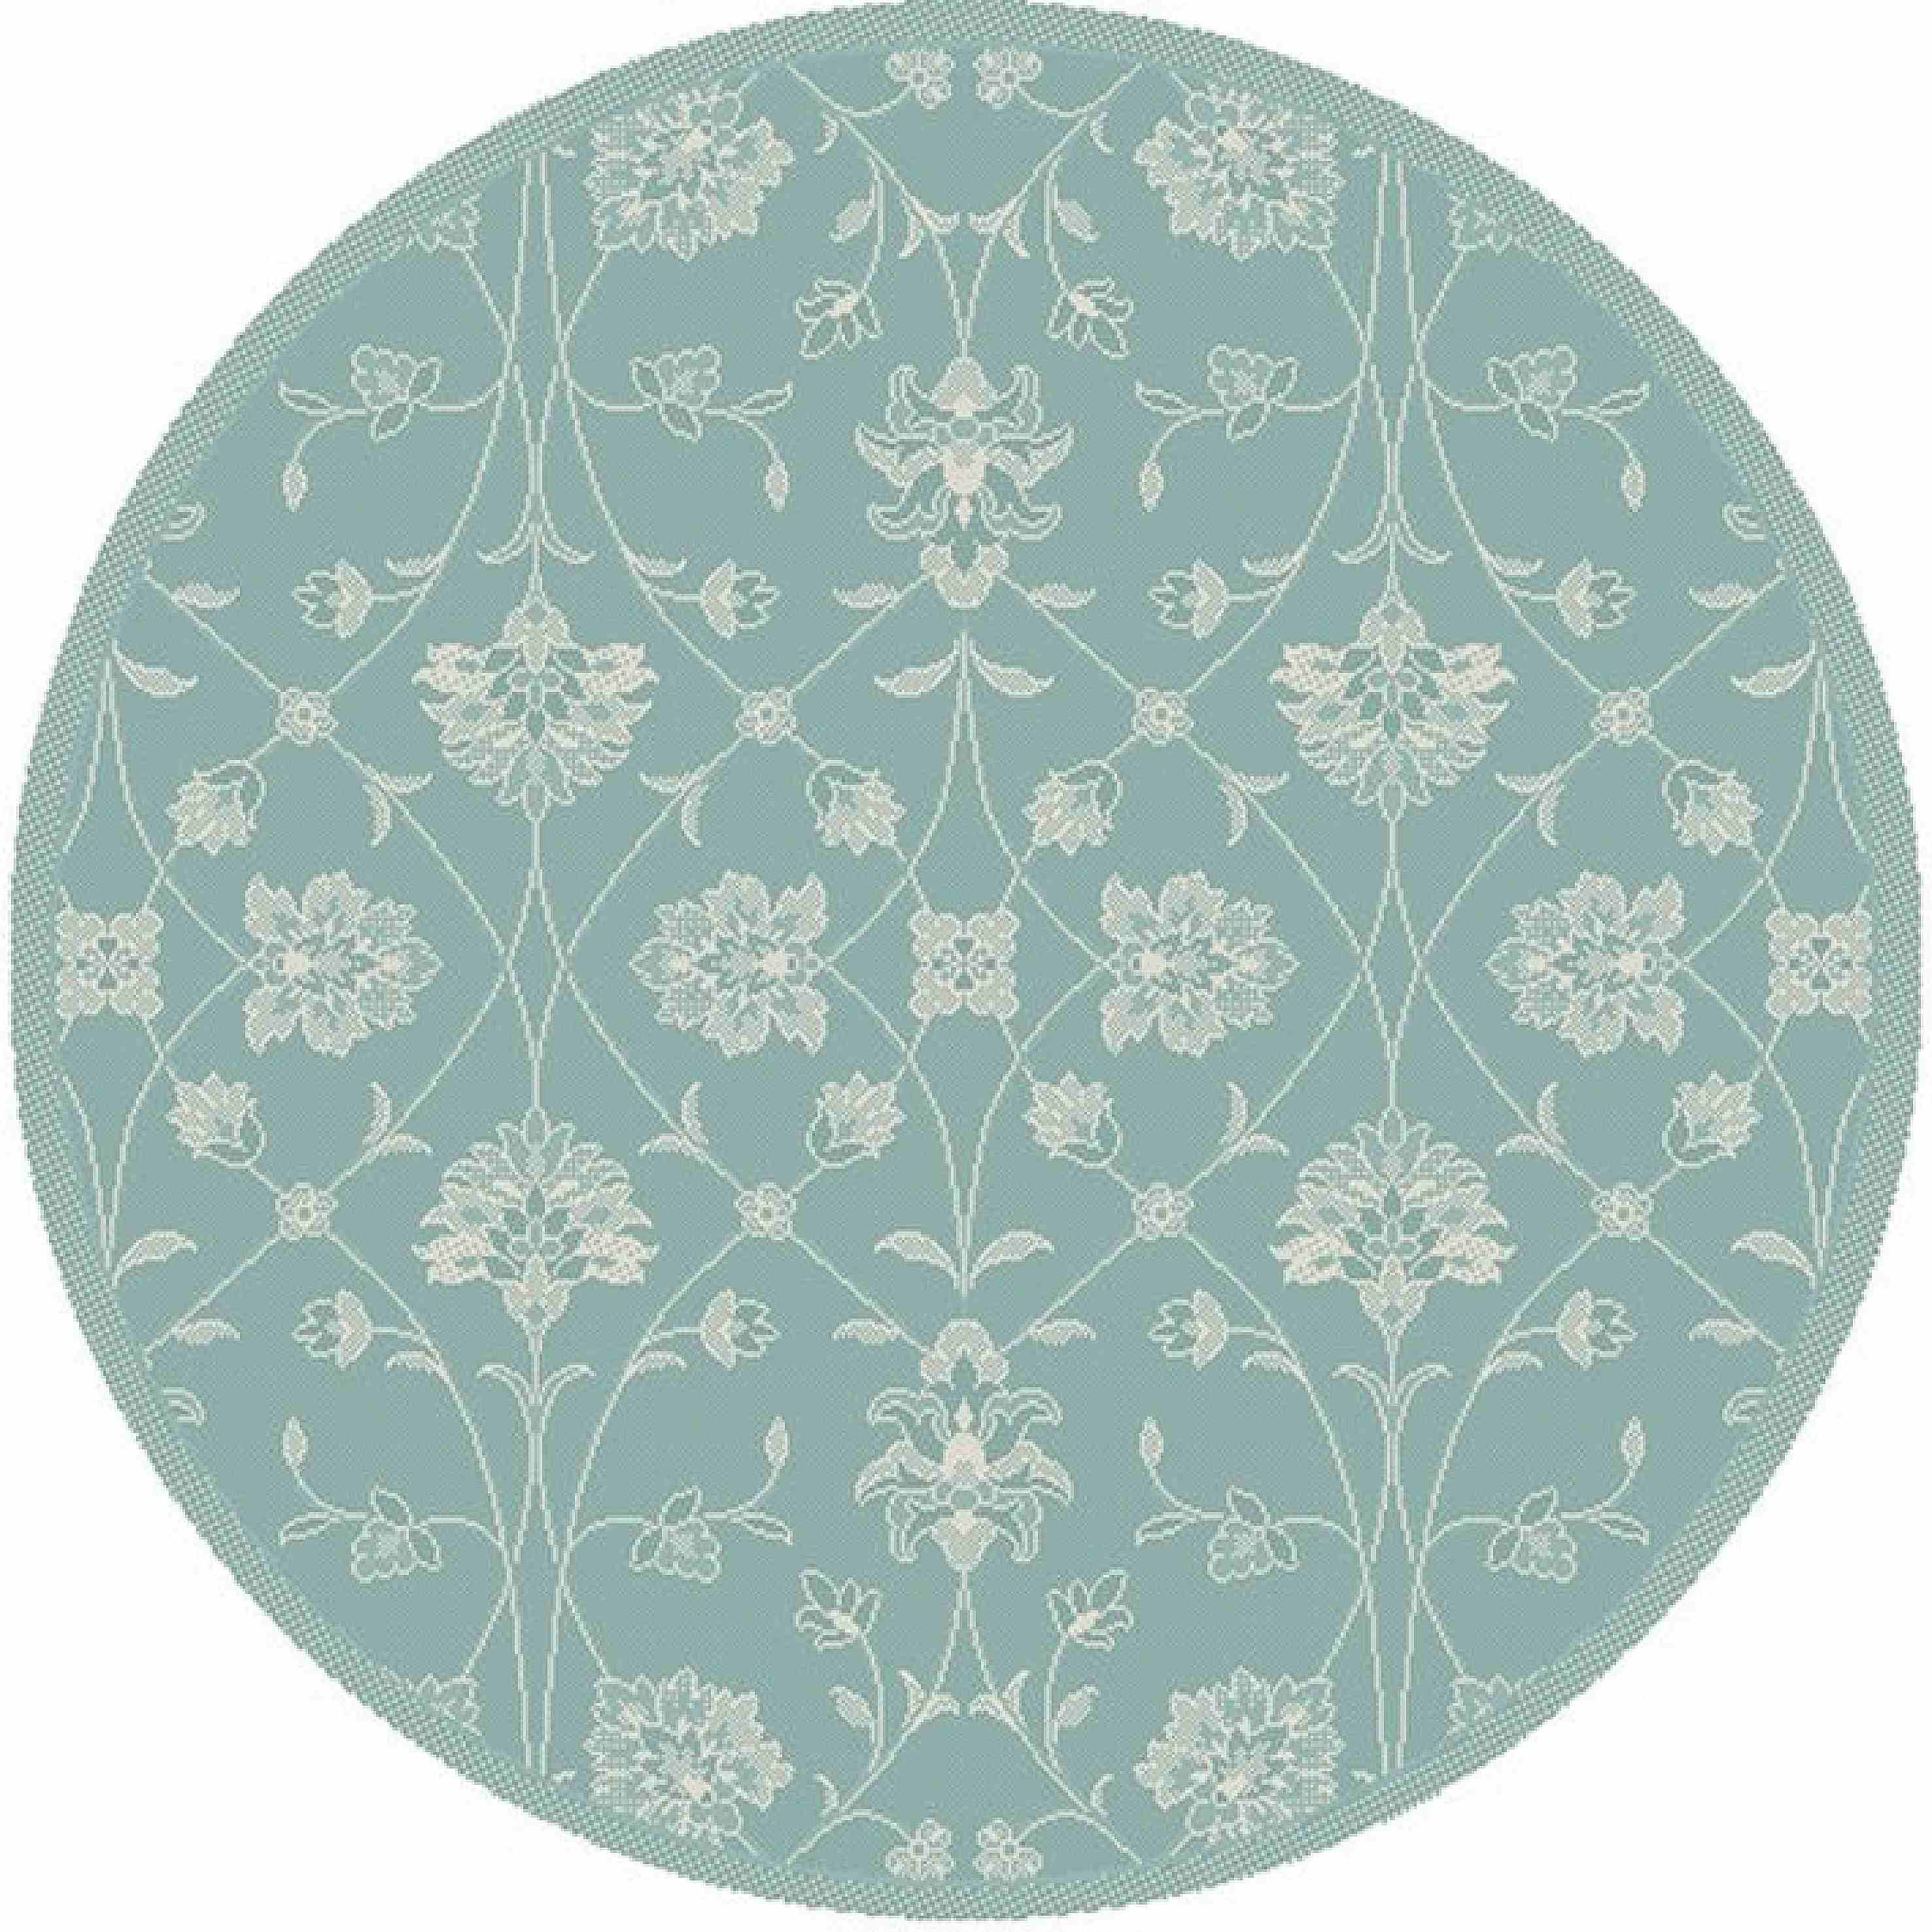 Dynamic Rugs Piazza Floral Blue 2744 Area Rug